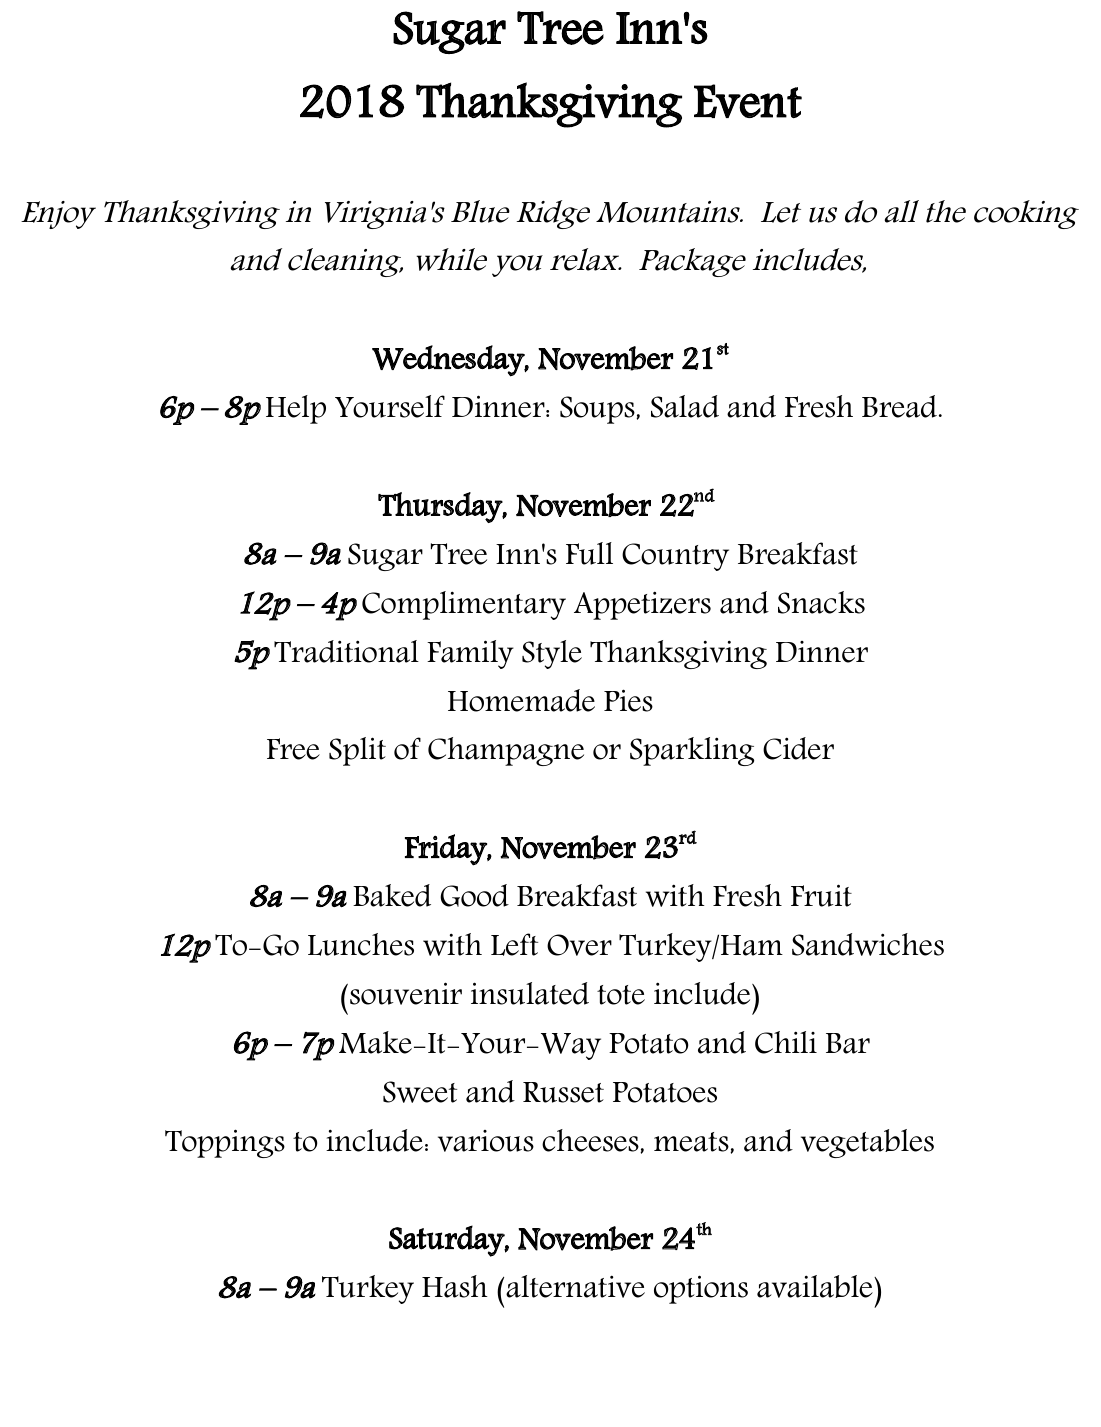 Thanksgiving Event Menu and Schedule